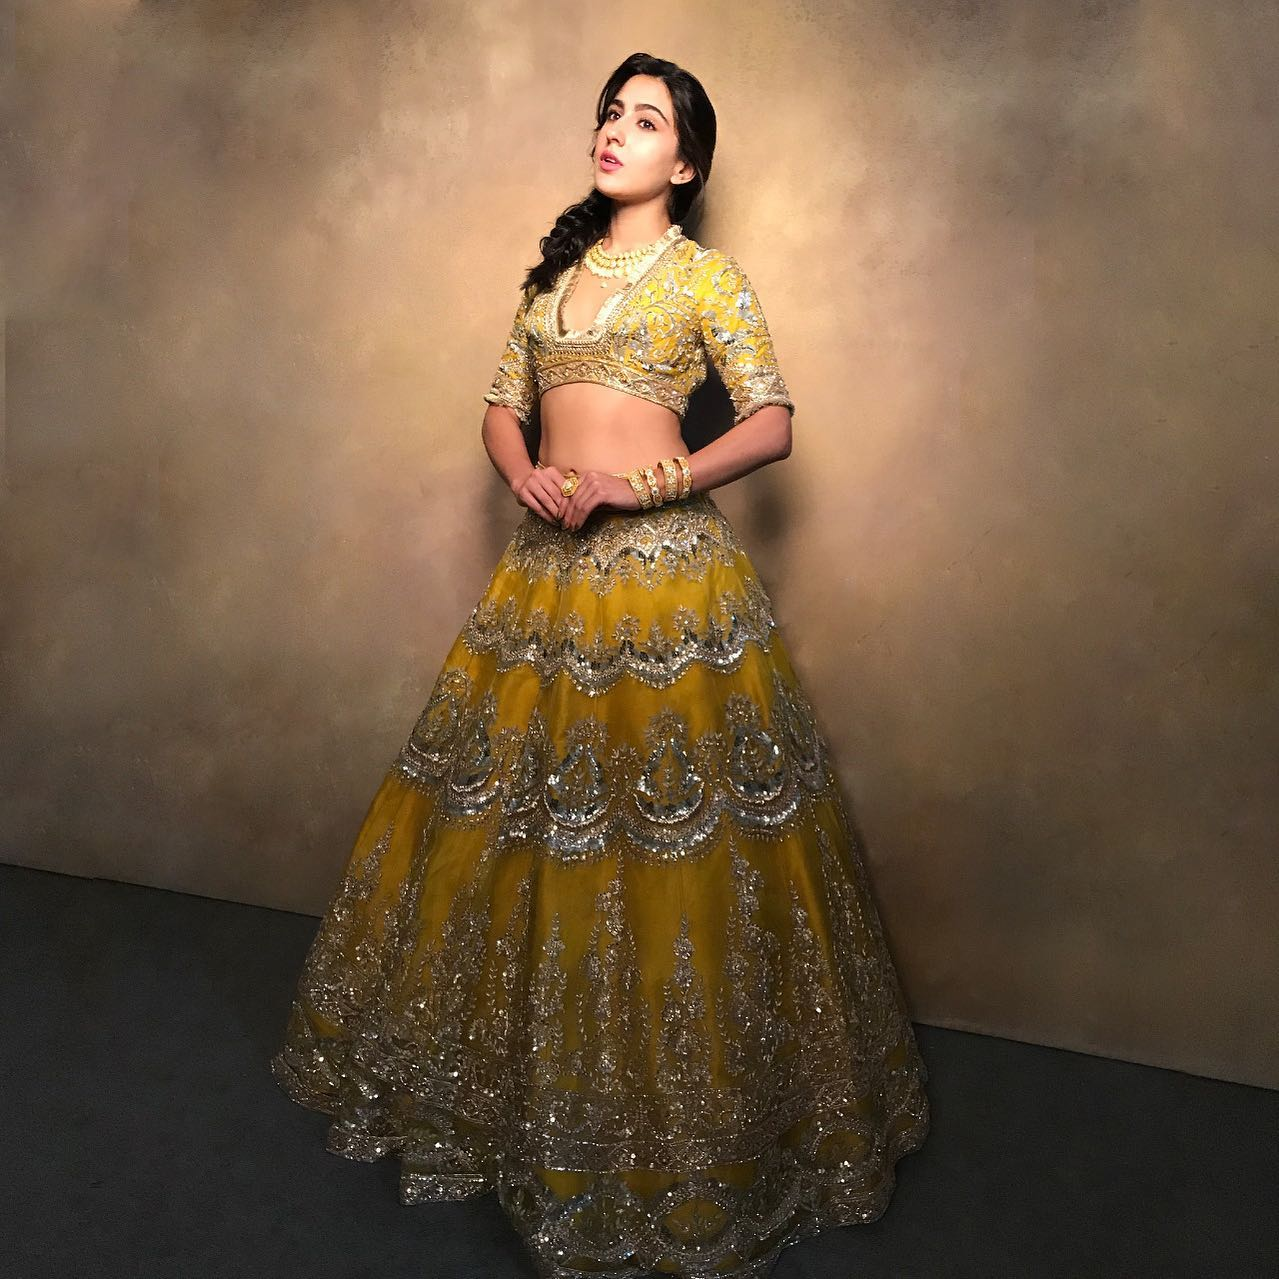 A pinnacle of extravagance In a grand sunlit spectacle Illuminating the #Noor of #Nooraniyat  Sara Ali khan brings about meteoric impact in the realm of bridal land... 2021-06-22